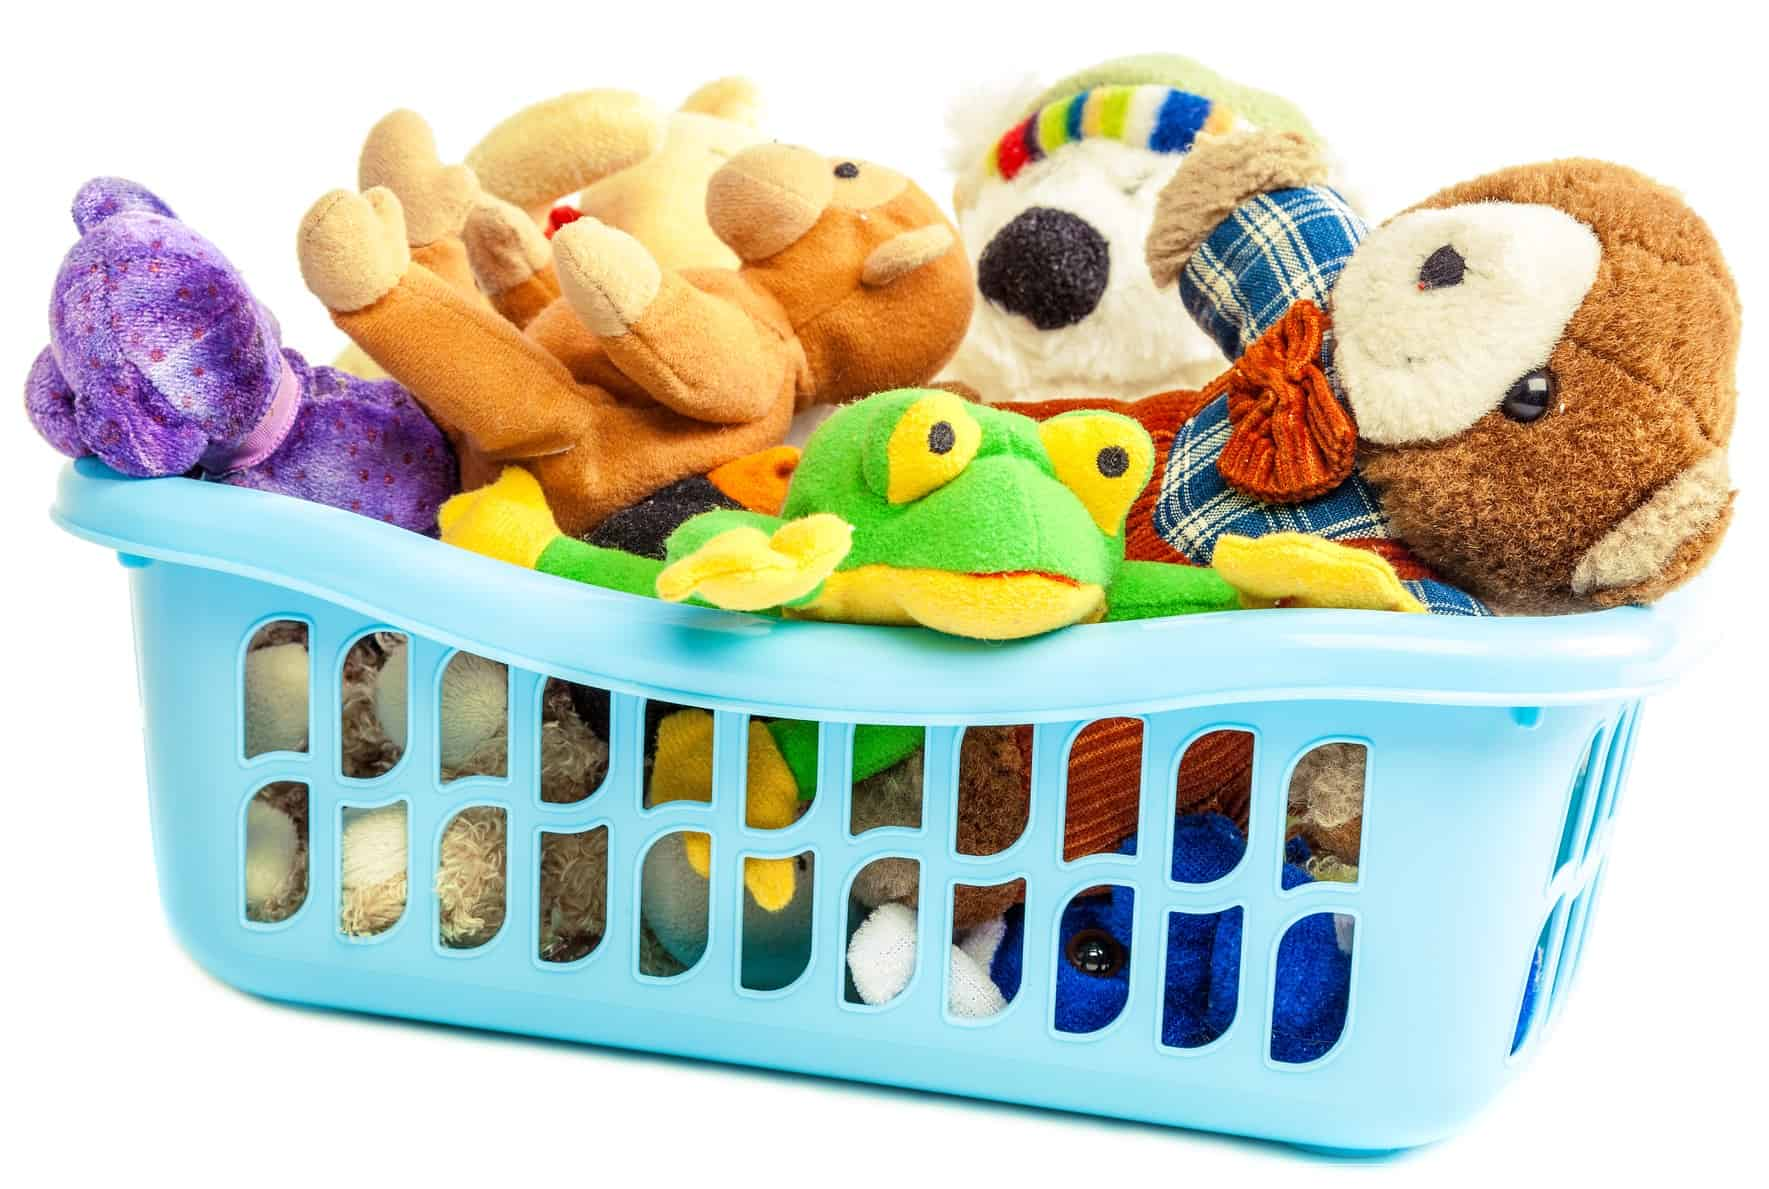 stuffed animals in laundry basket